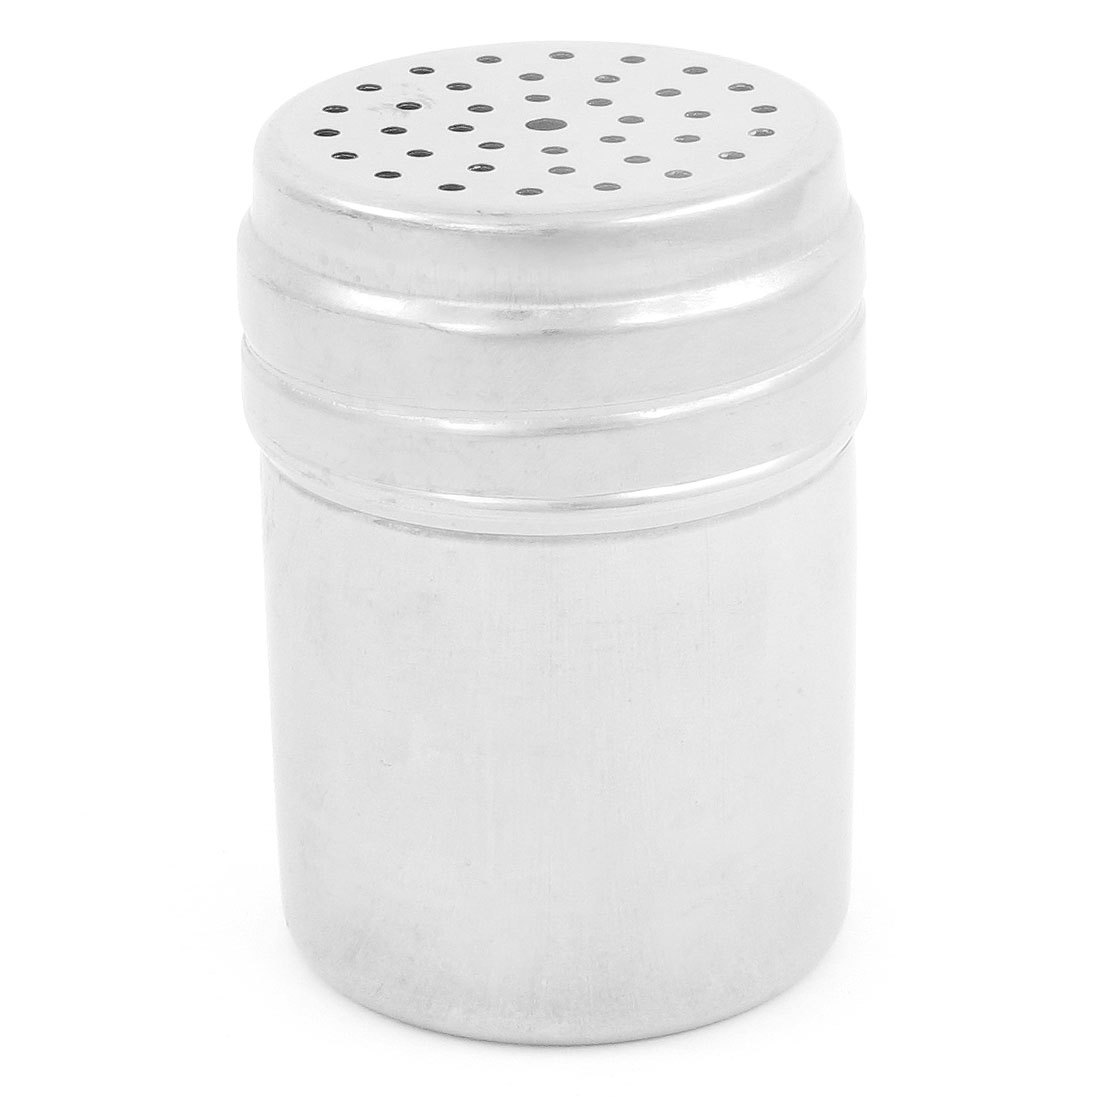 Silver Tone Metallic Hollow Out Pepper Shaker Salt Storage Bottle